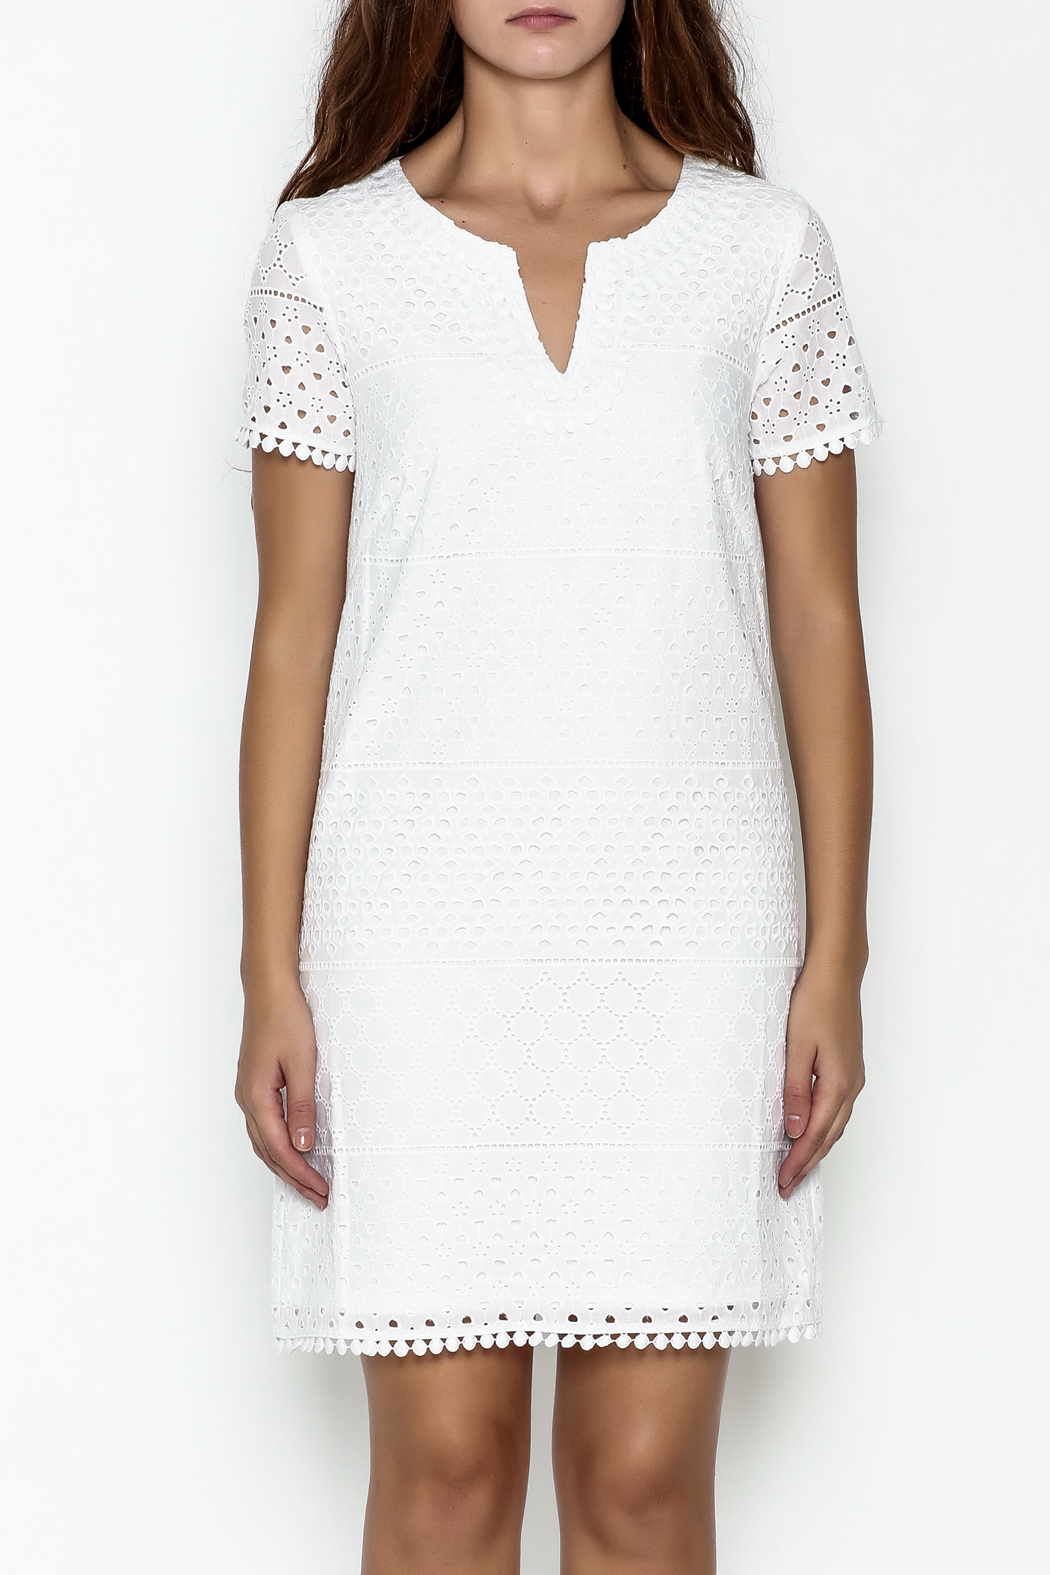 Jade Eyelet Cap Sleeve Dress - Front Full Image